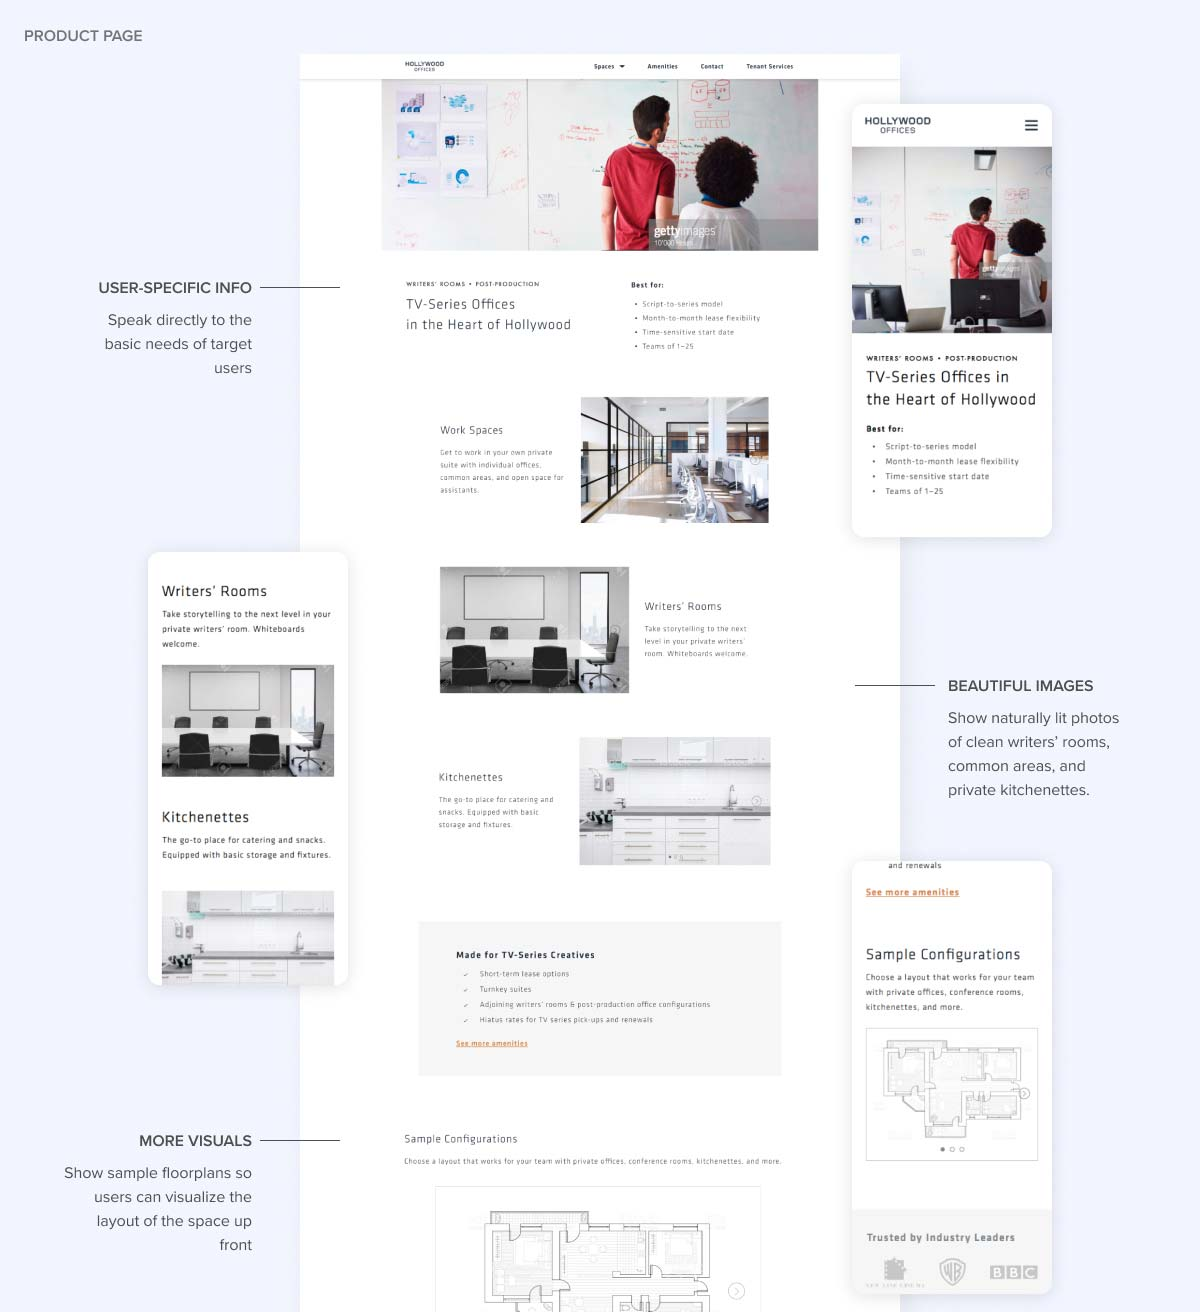 High-fidelity desktop and mobile mockups for the product page, redlined with improvements